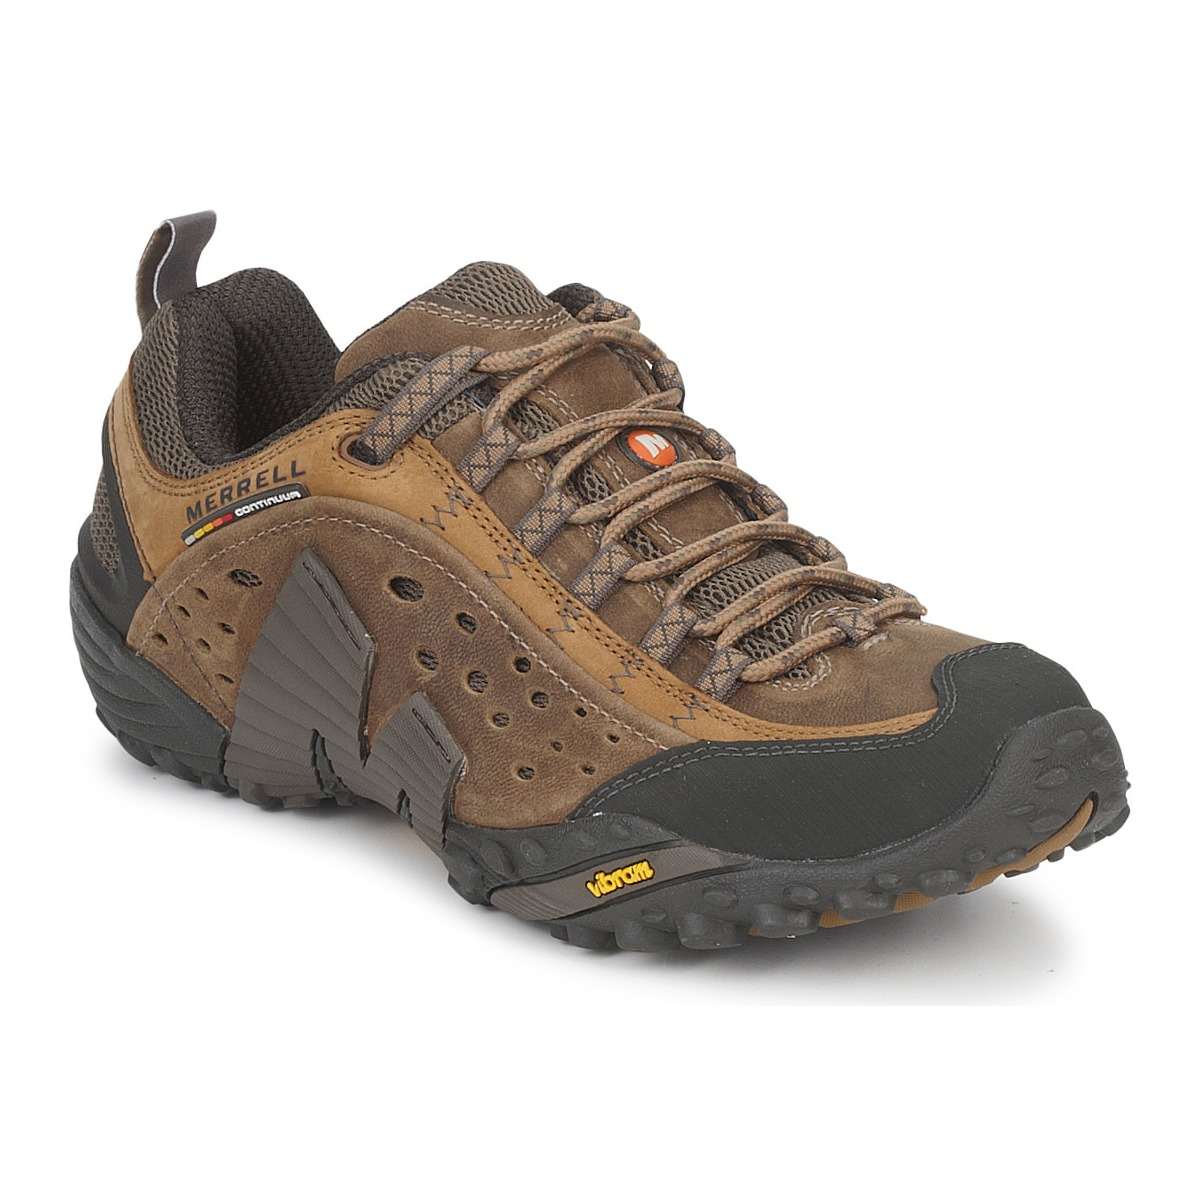 Chaussures Merrell Intercept marron Casual homme 3dG2OwR